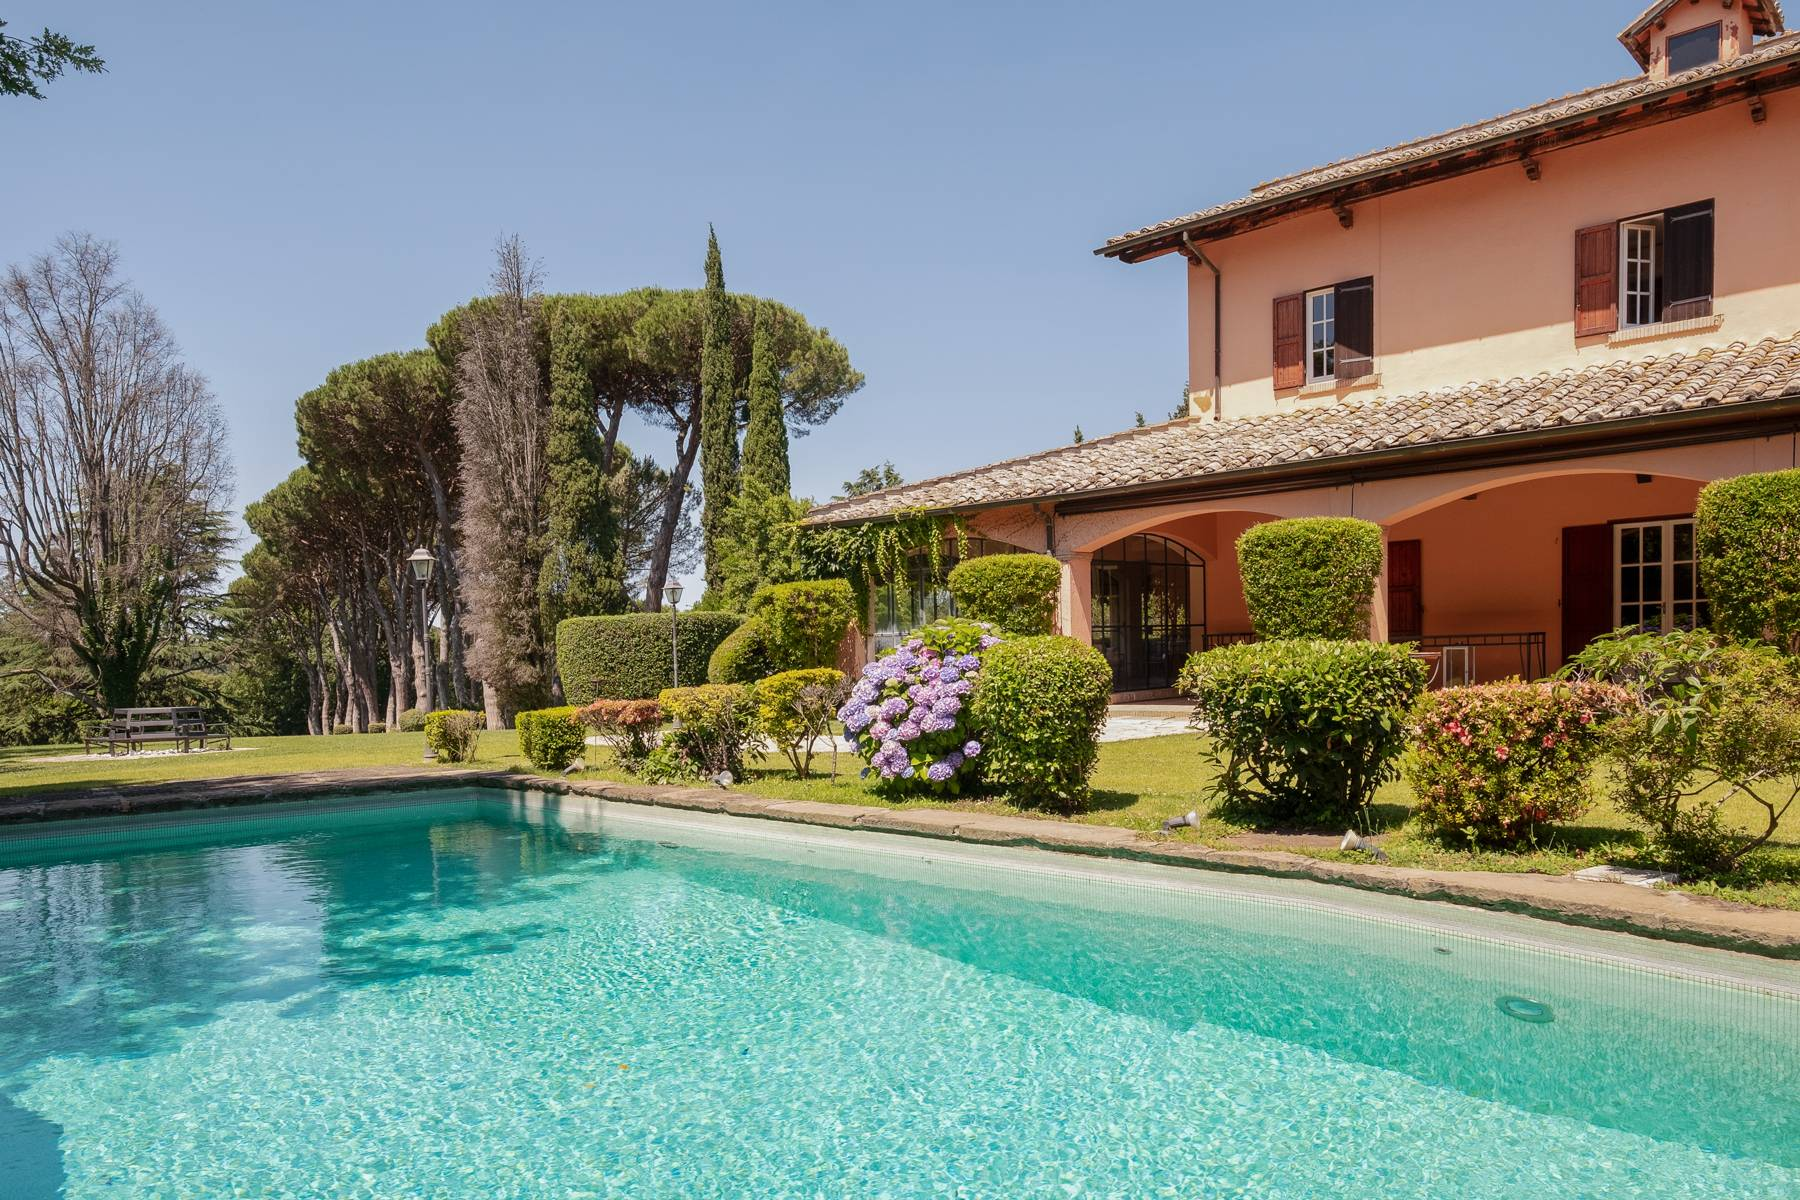 Claudia Estate: charm and elegance surrounded by nature - 6